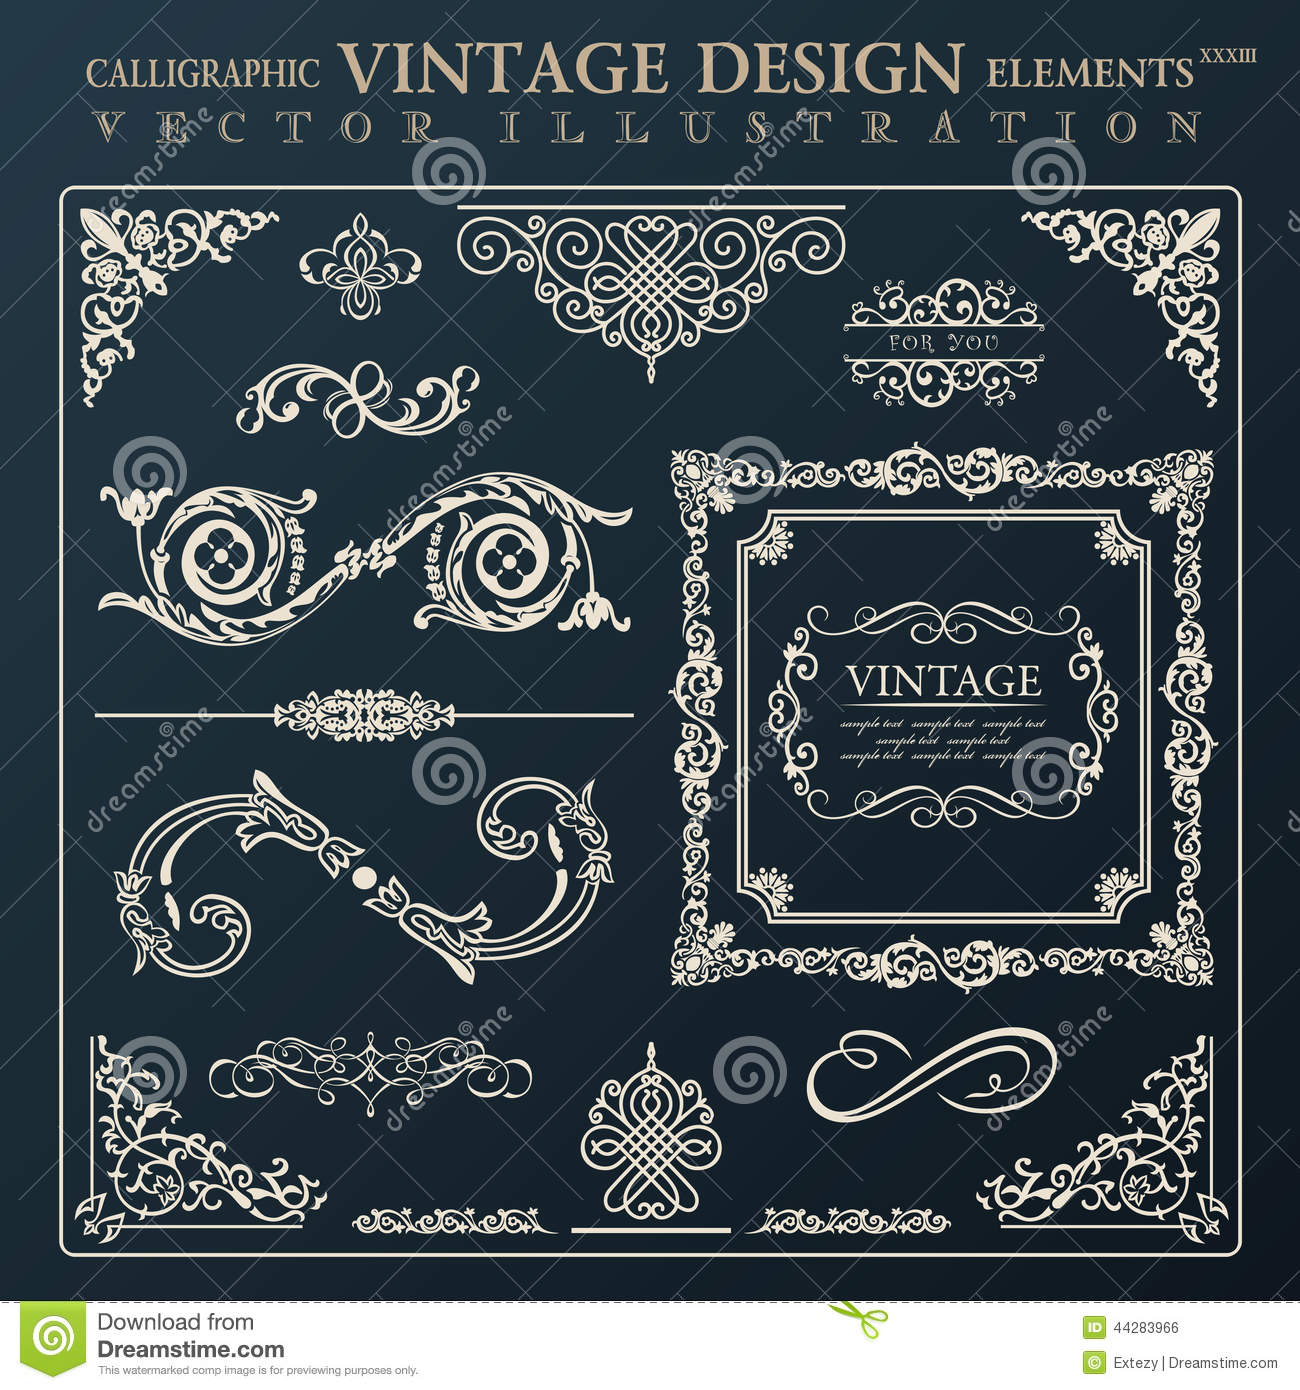 Download free vintage ornaments vintage ornaments and iders - Royalty Free Vector Download Calligraphic Design Elements Vintage Ornament